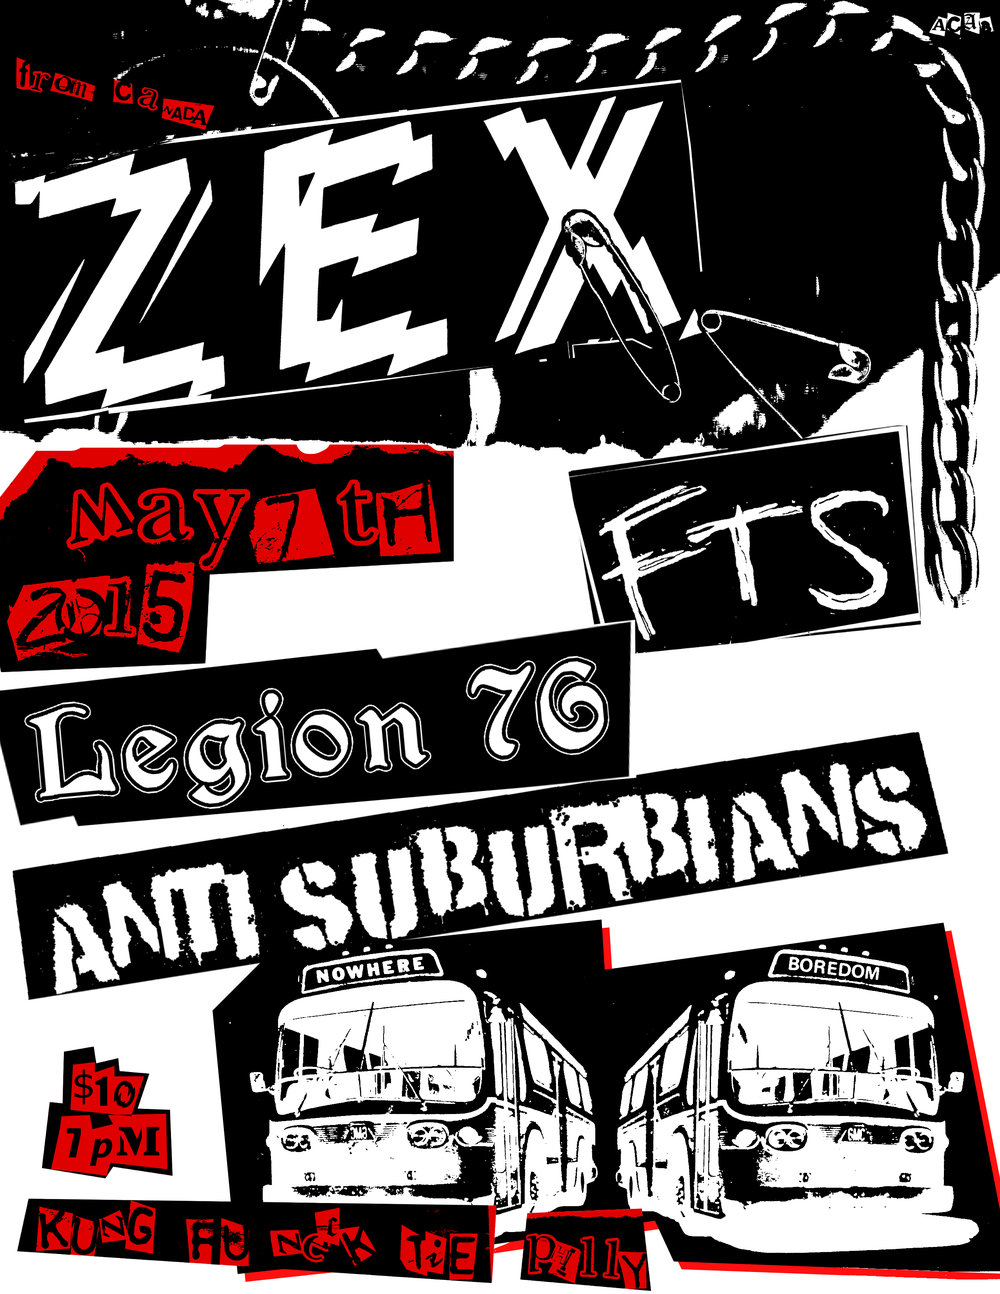 flyer-15.05.07-philly-zex-red.jpg